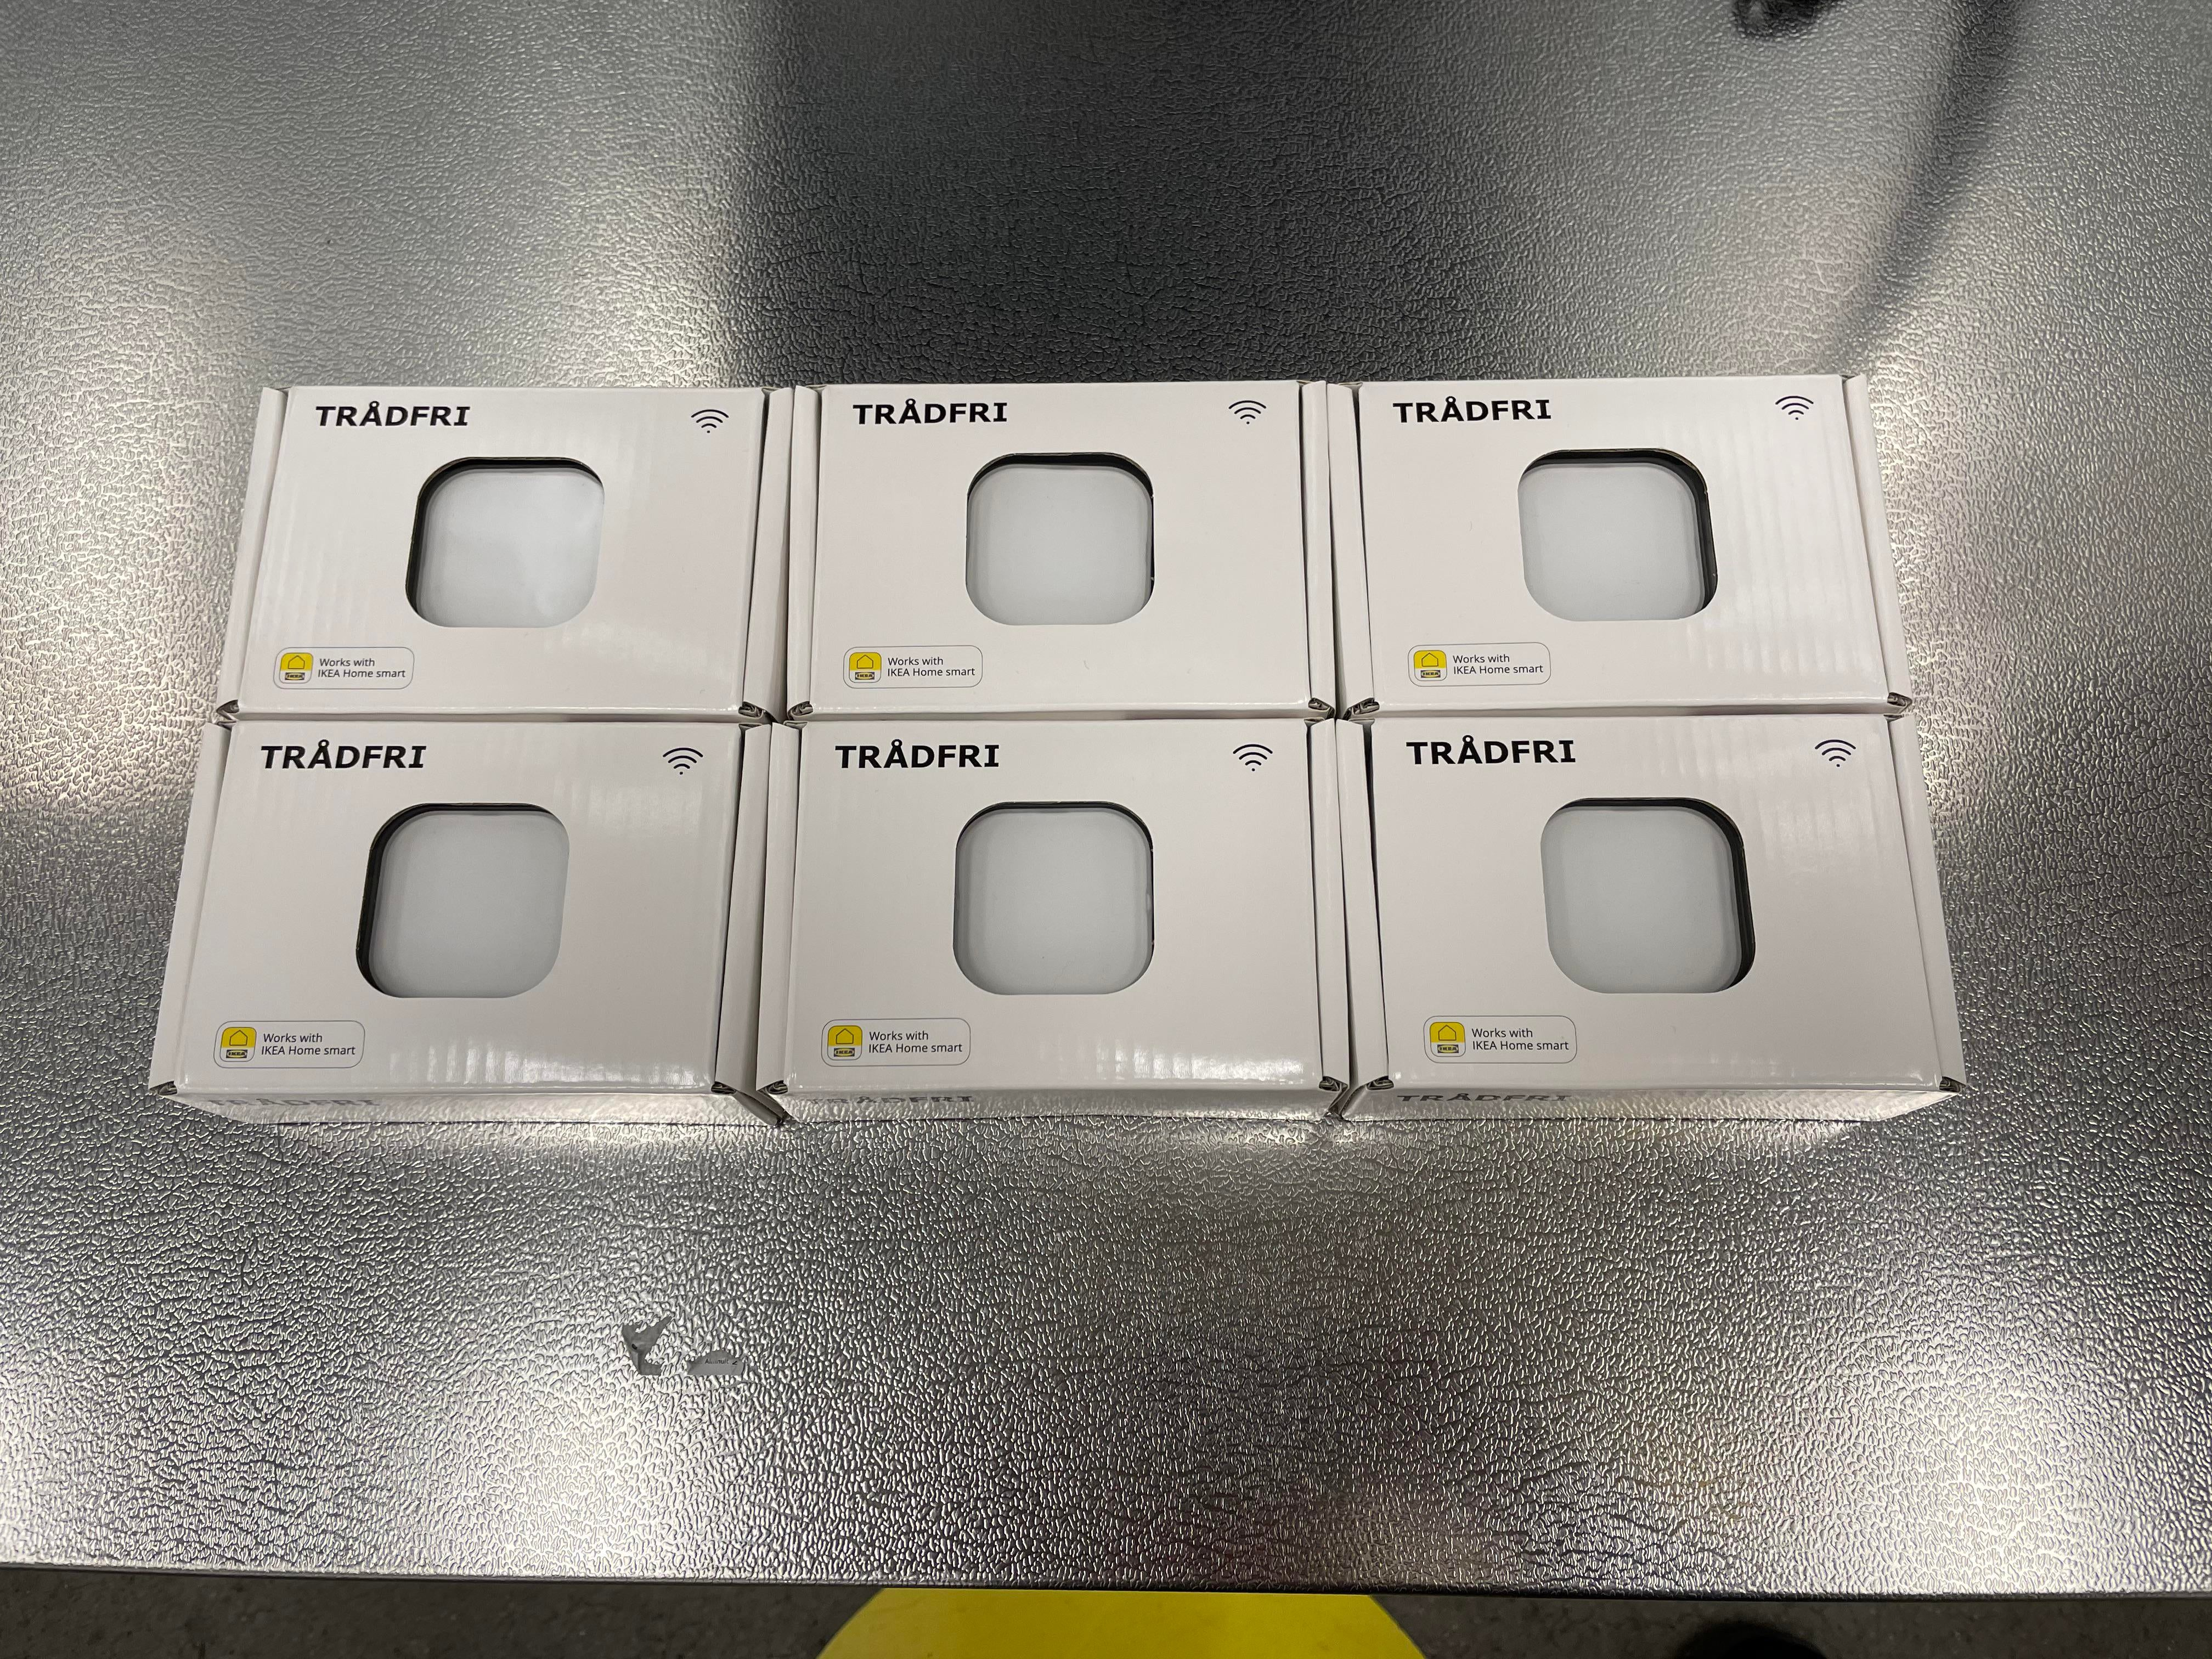 Look for these HomeKit compatible buttons in your local IKEA